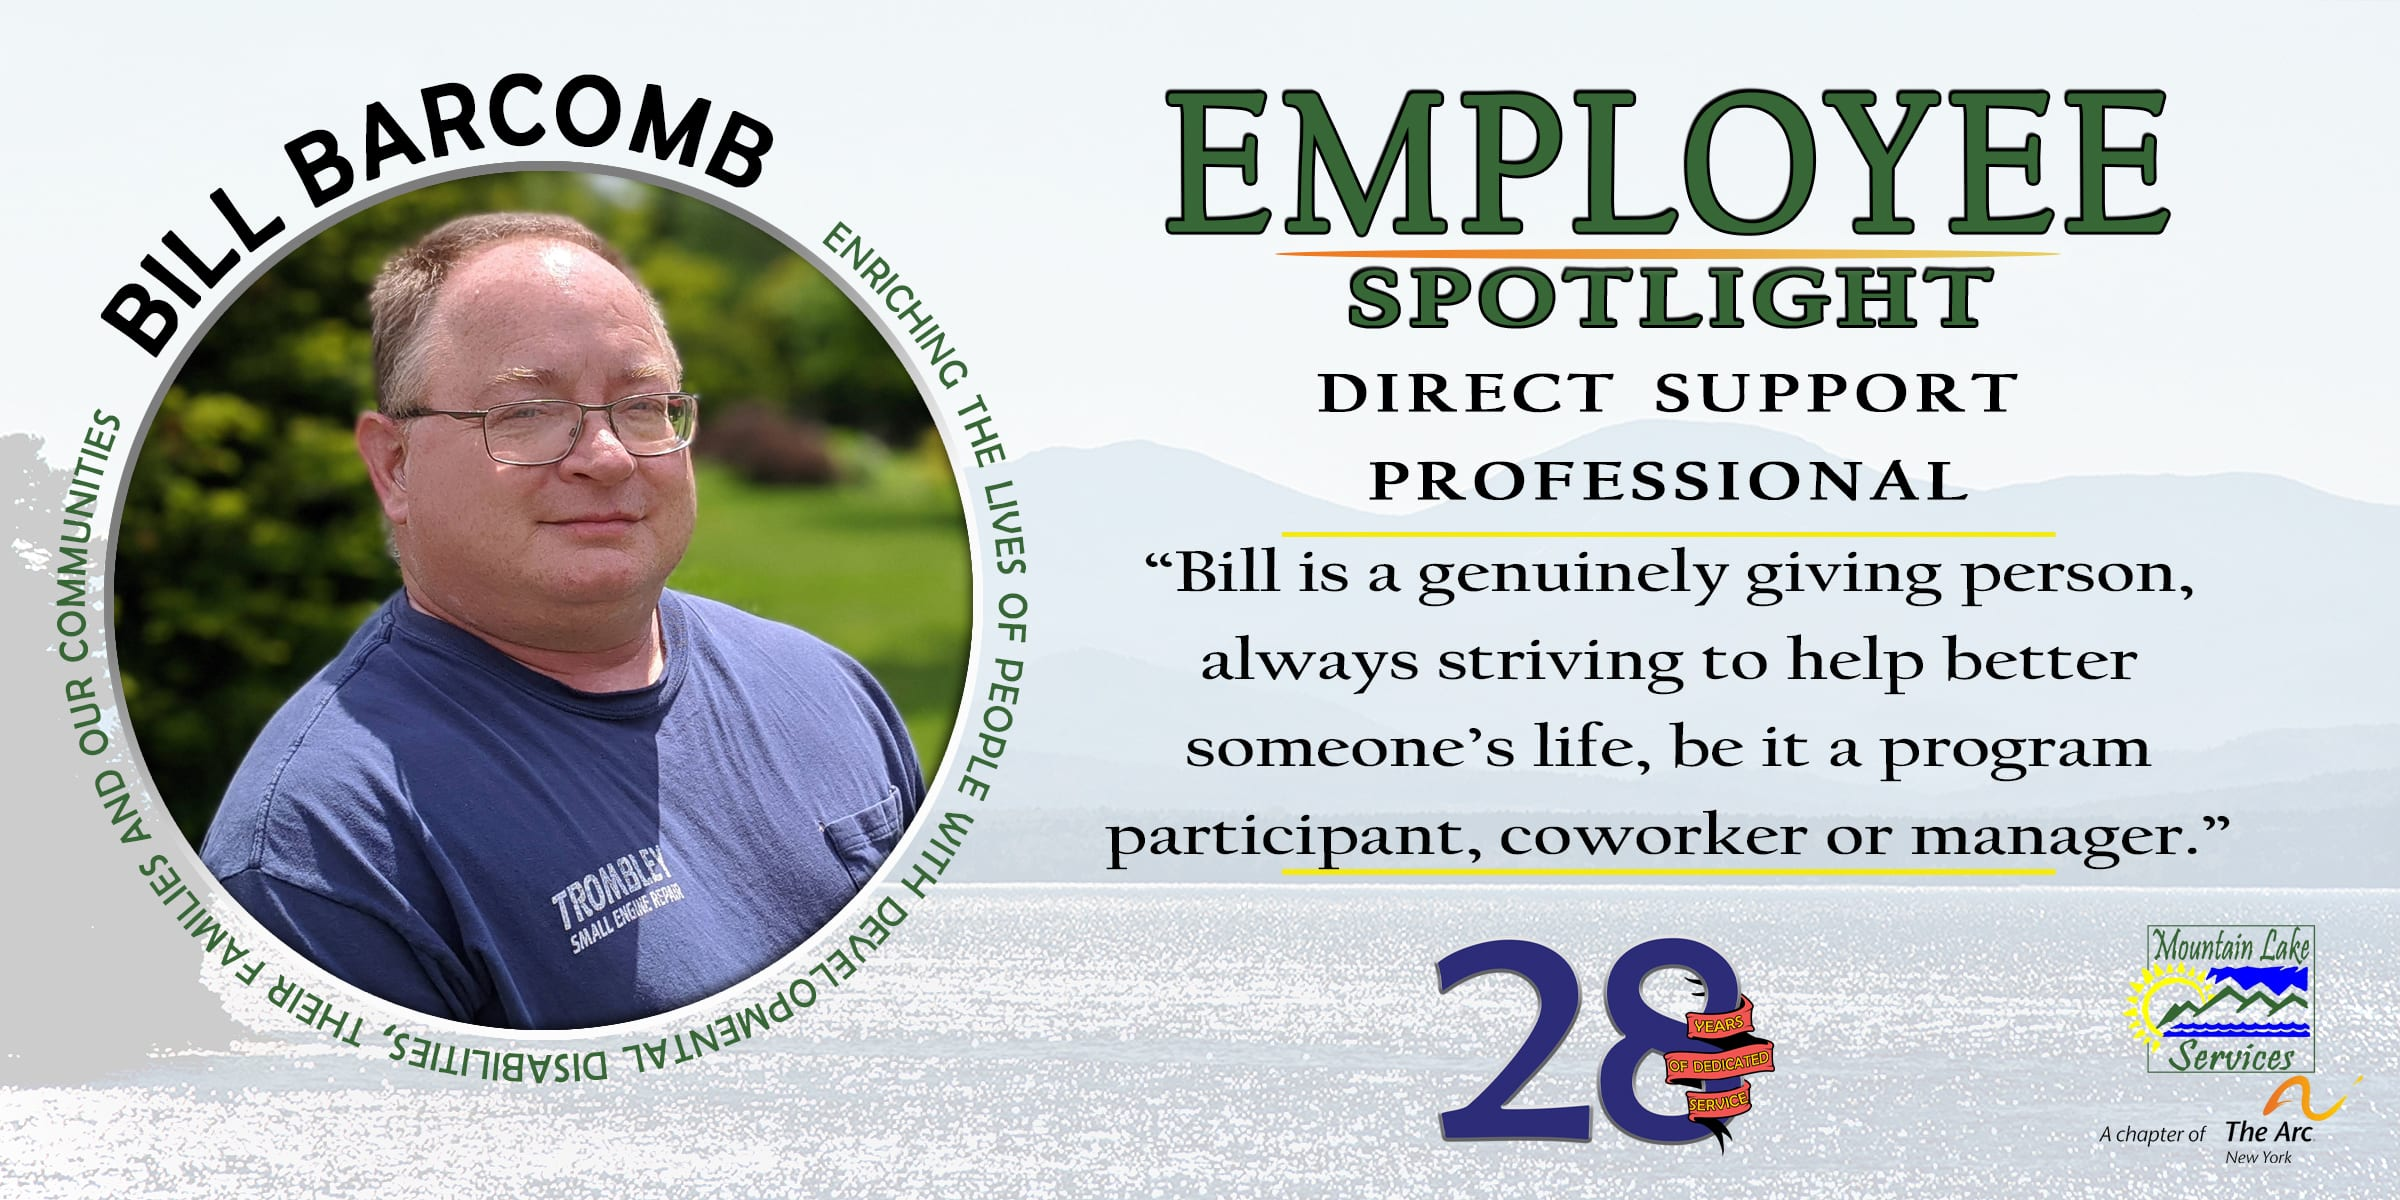 Employee Spotlight of a DSP from Mountain Lake Services